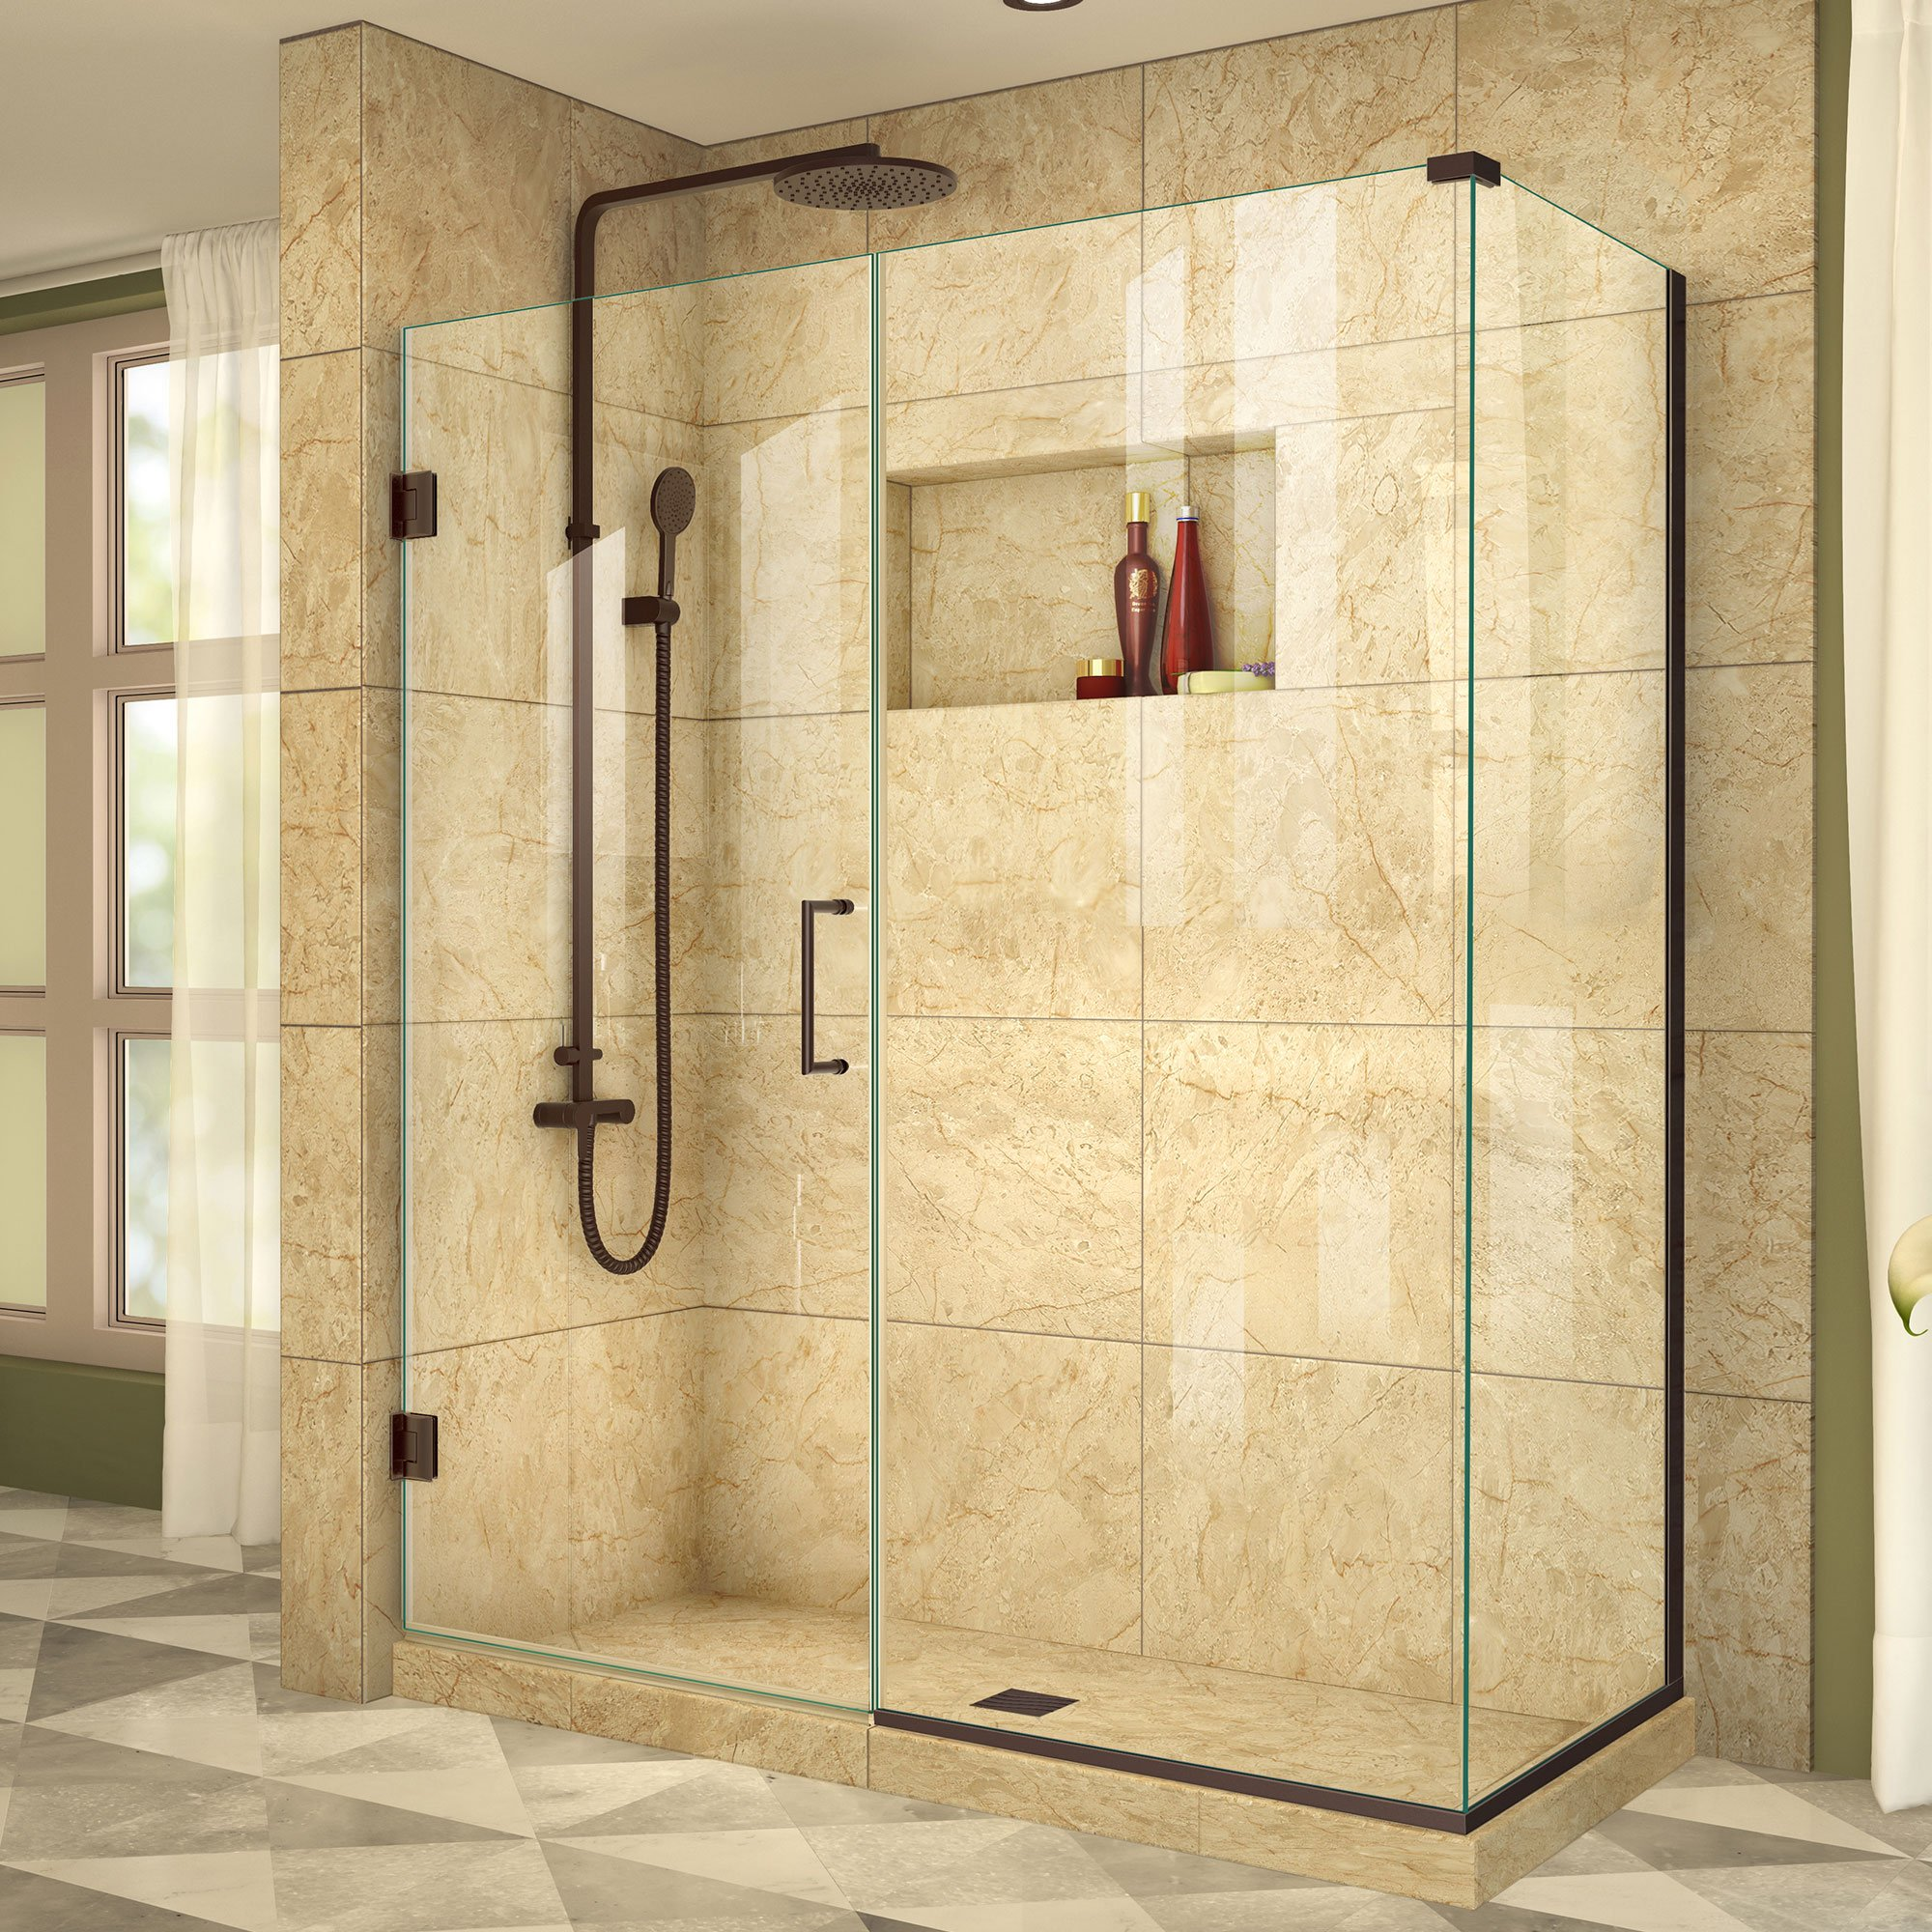 DreamLine Unidoor Plus 34 3/8 in. D x 60 in. W, Frameless Hinged Shower Enclosure, 3/8'' Glass, Oil Rubbed Bronze Finish by DreamLine